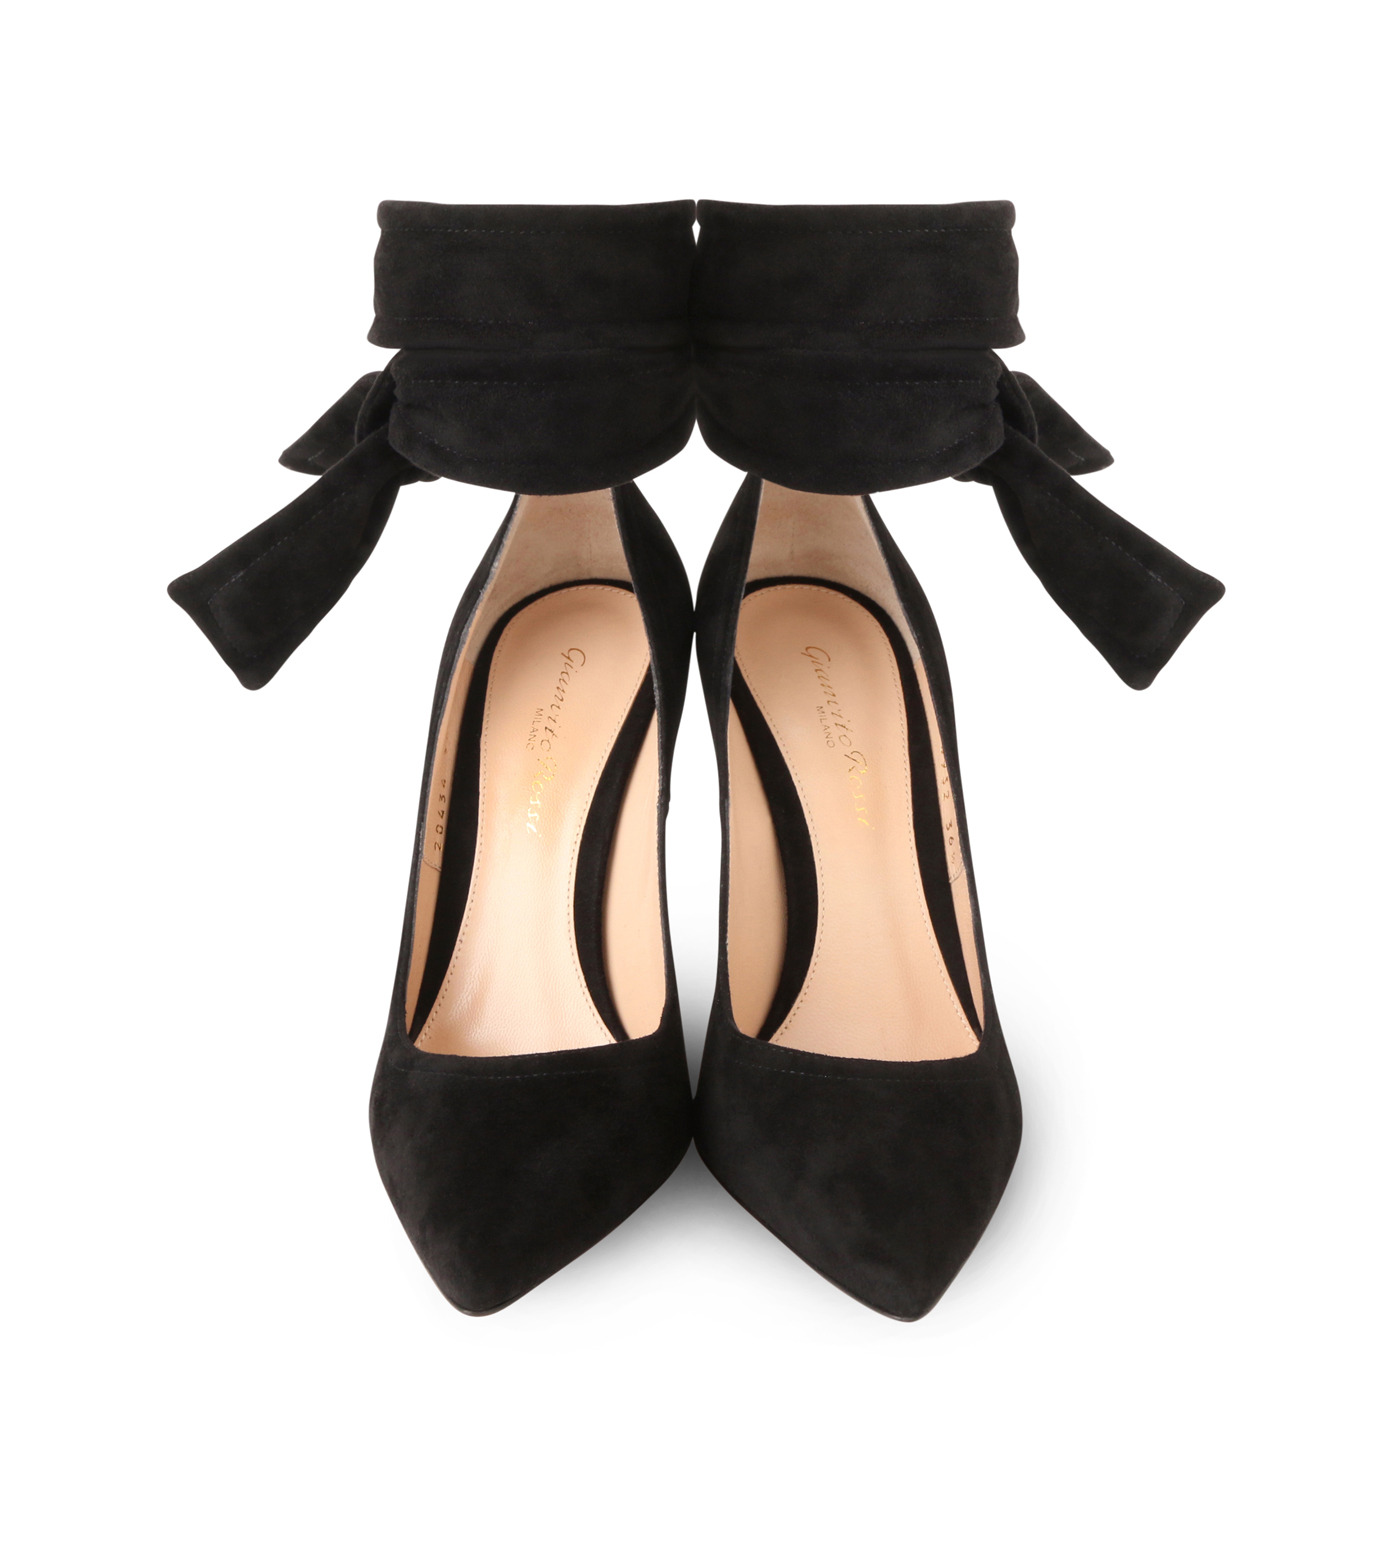 Gianvito Rossi(ジャンヴィト ロッシ)のAnkle Belted Suede Pump-BLACK(パンプス/pumps)-20434-13 拡大詳細画像4